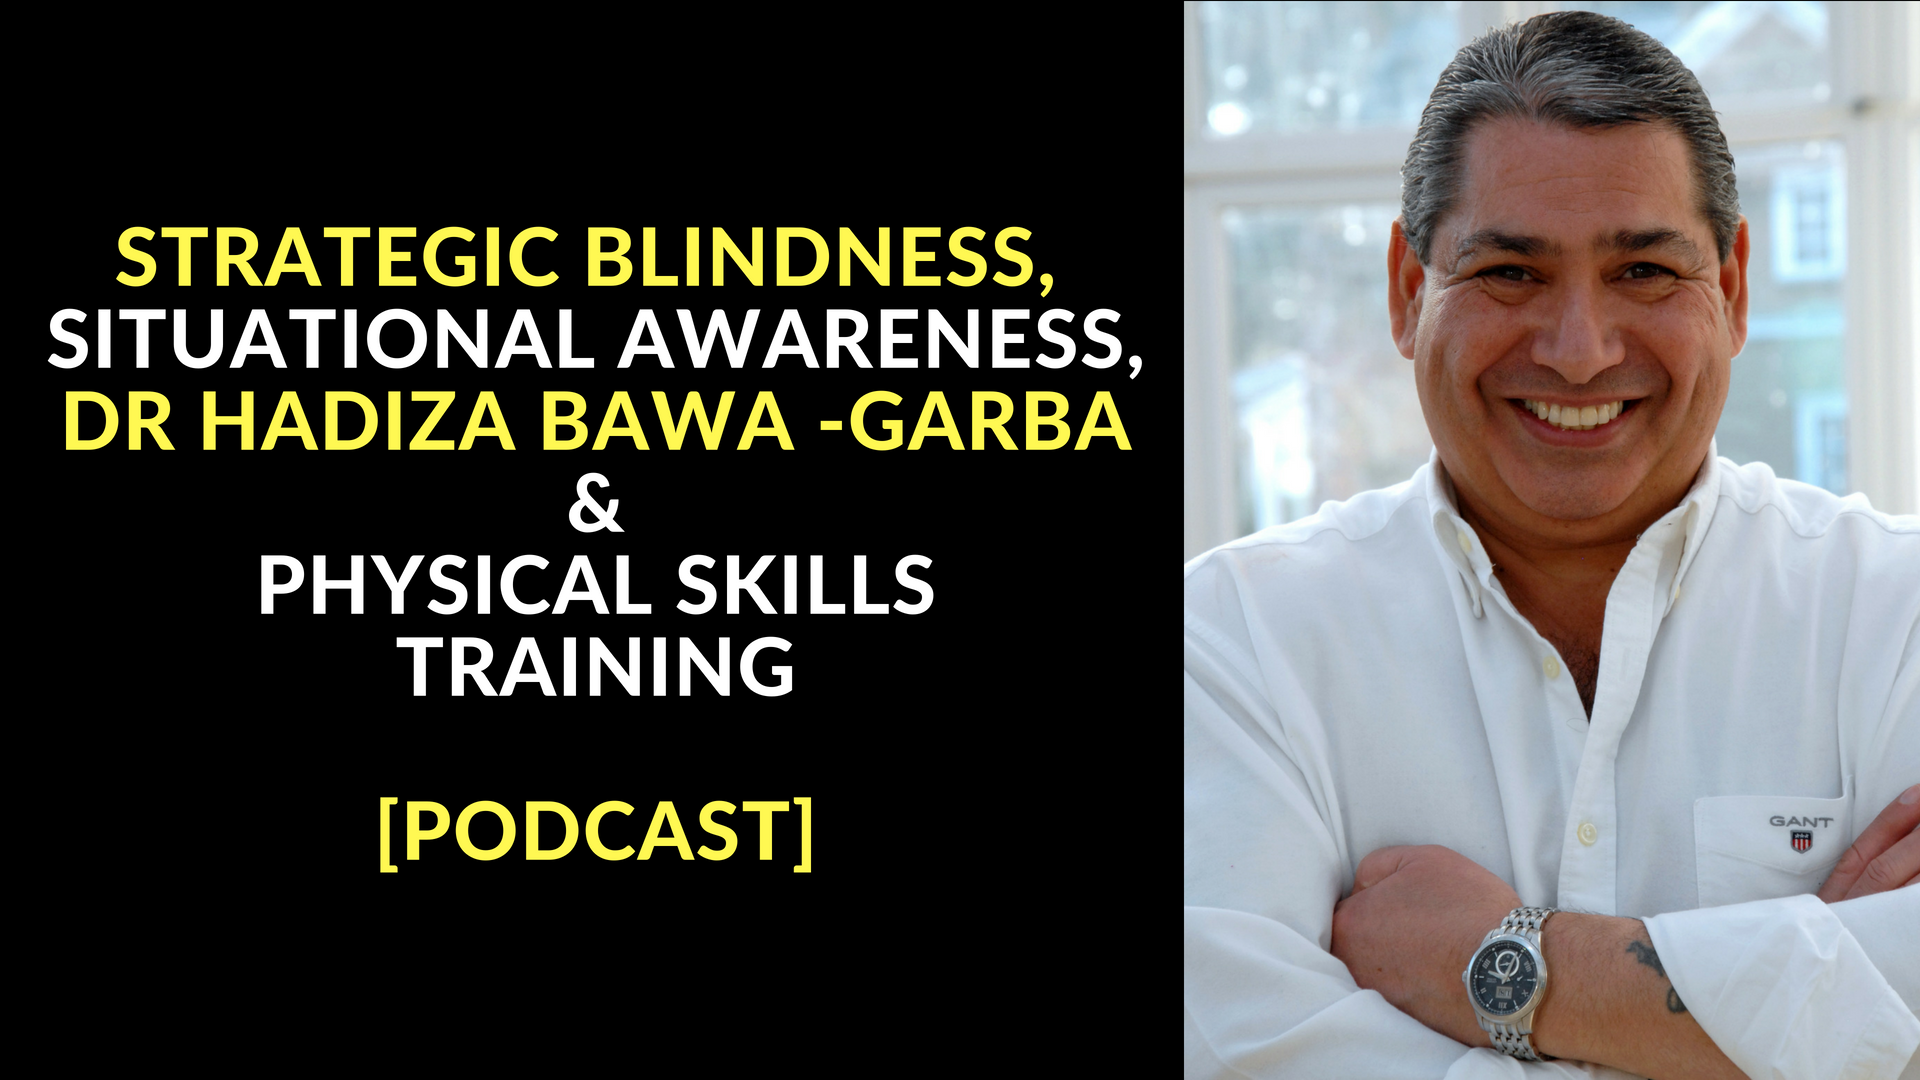 STRATEGIC BLINDNESS, SITUATIONAL AWARENSS, DR HADIZA BAWA -GARBA & PHYSICAL SKILLS TRAINING